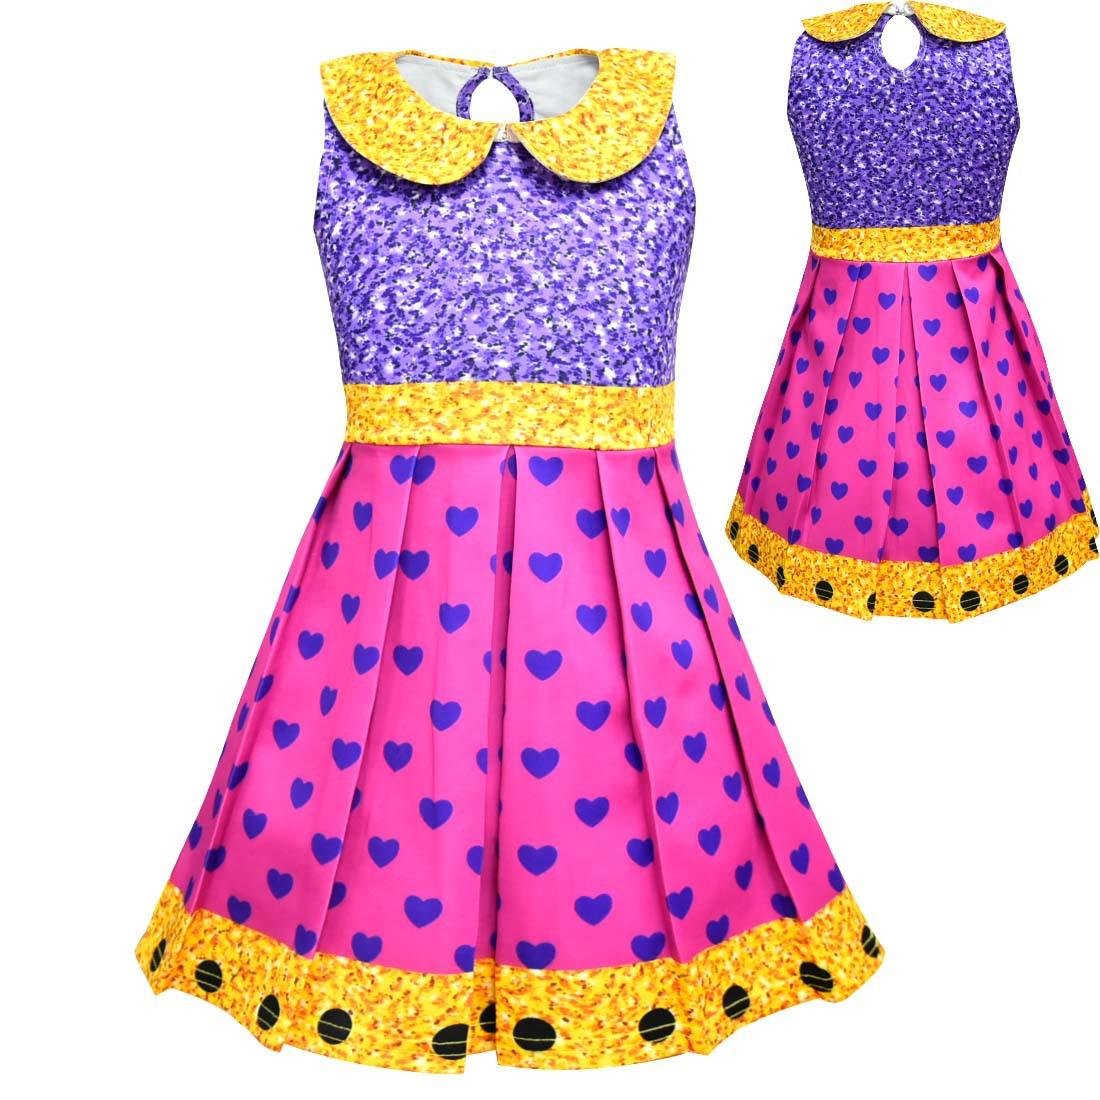 432863cdc30 Girls Surprise Princess Dresses Stage Show Cosplay Costume Kids Cartoon  Sleeveless Summer Lapel Dresses Clothes Birthday Party Dress 2019 Online  with ...